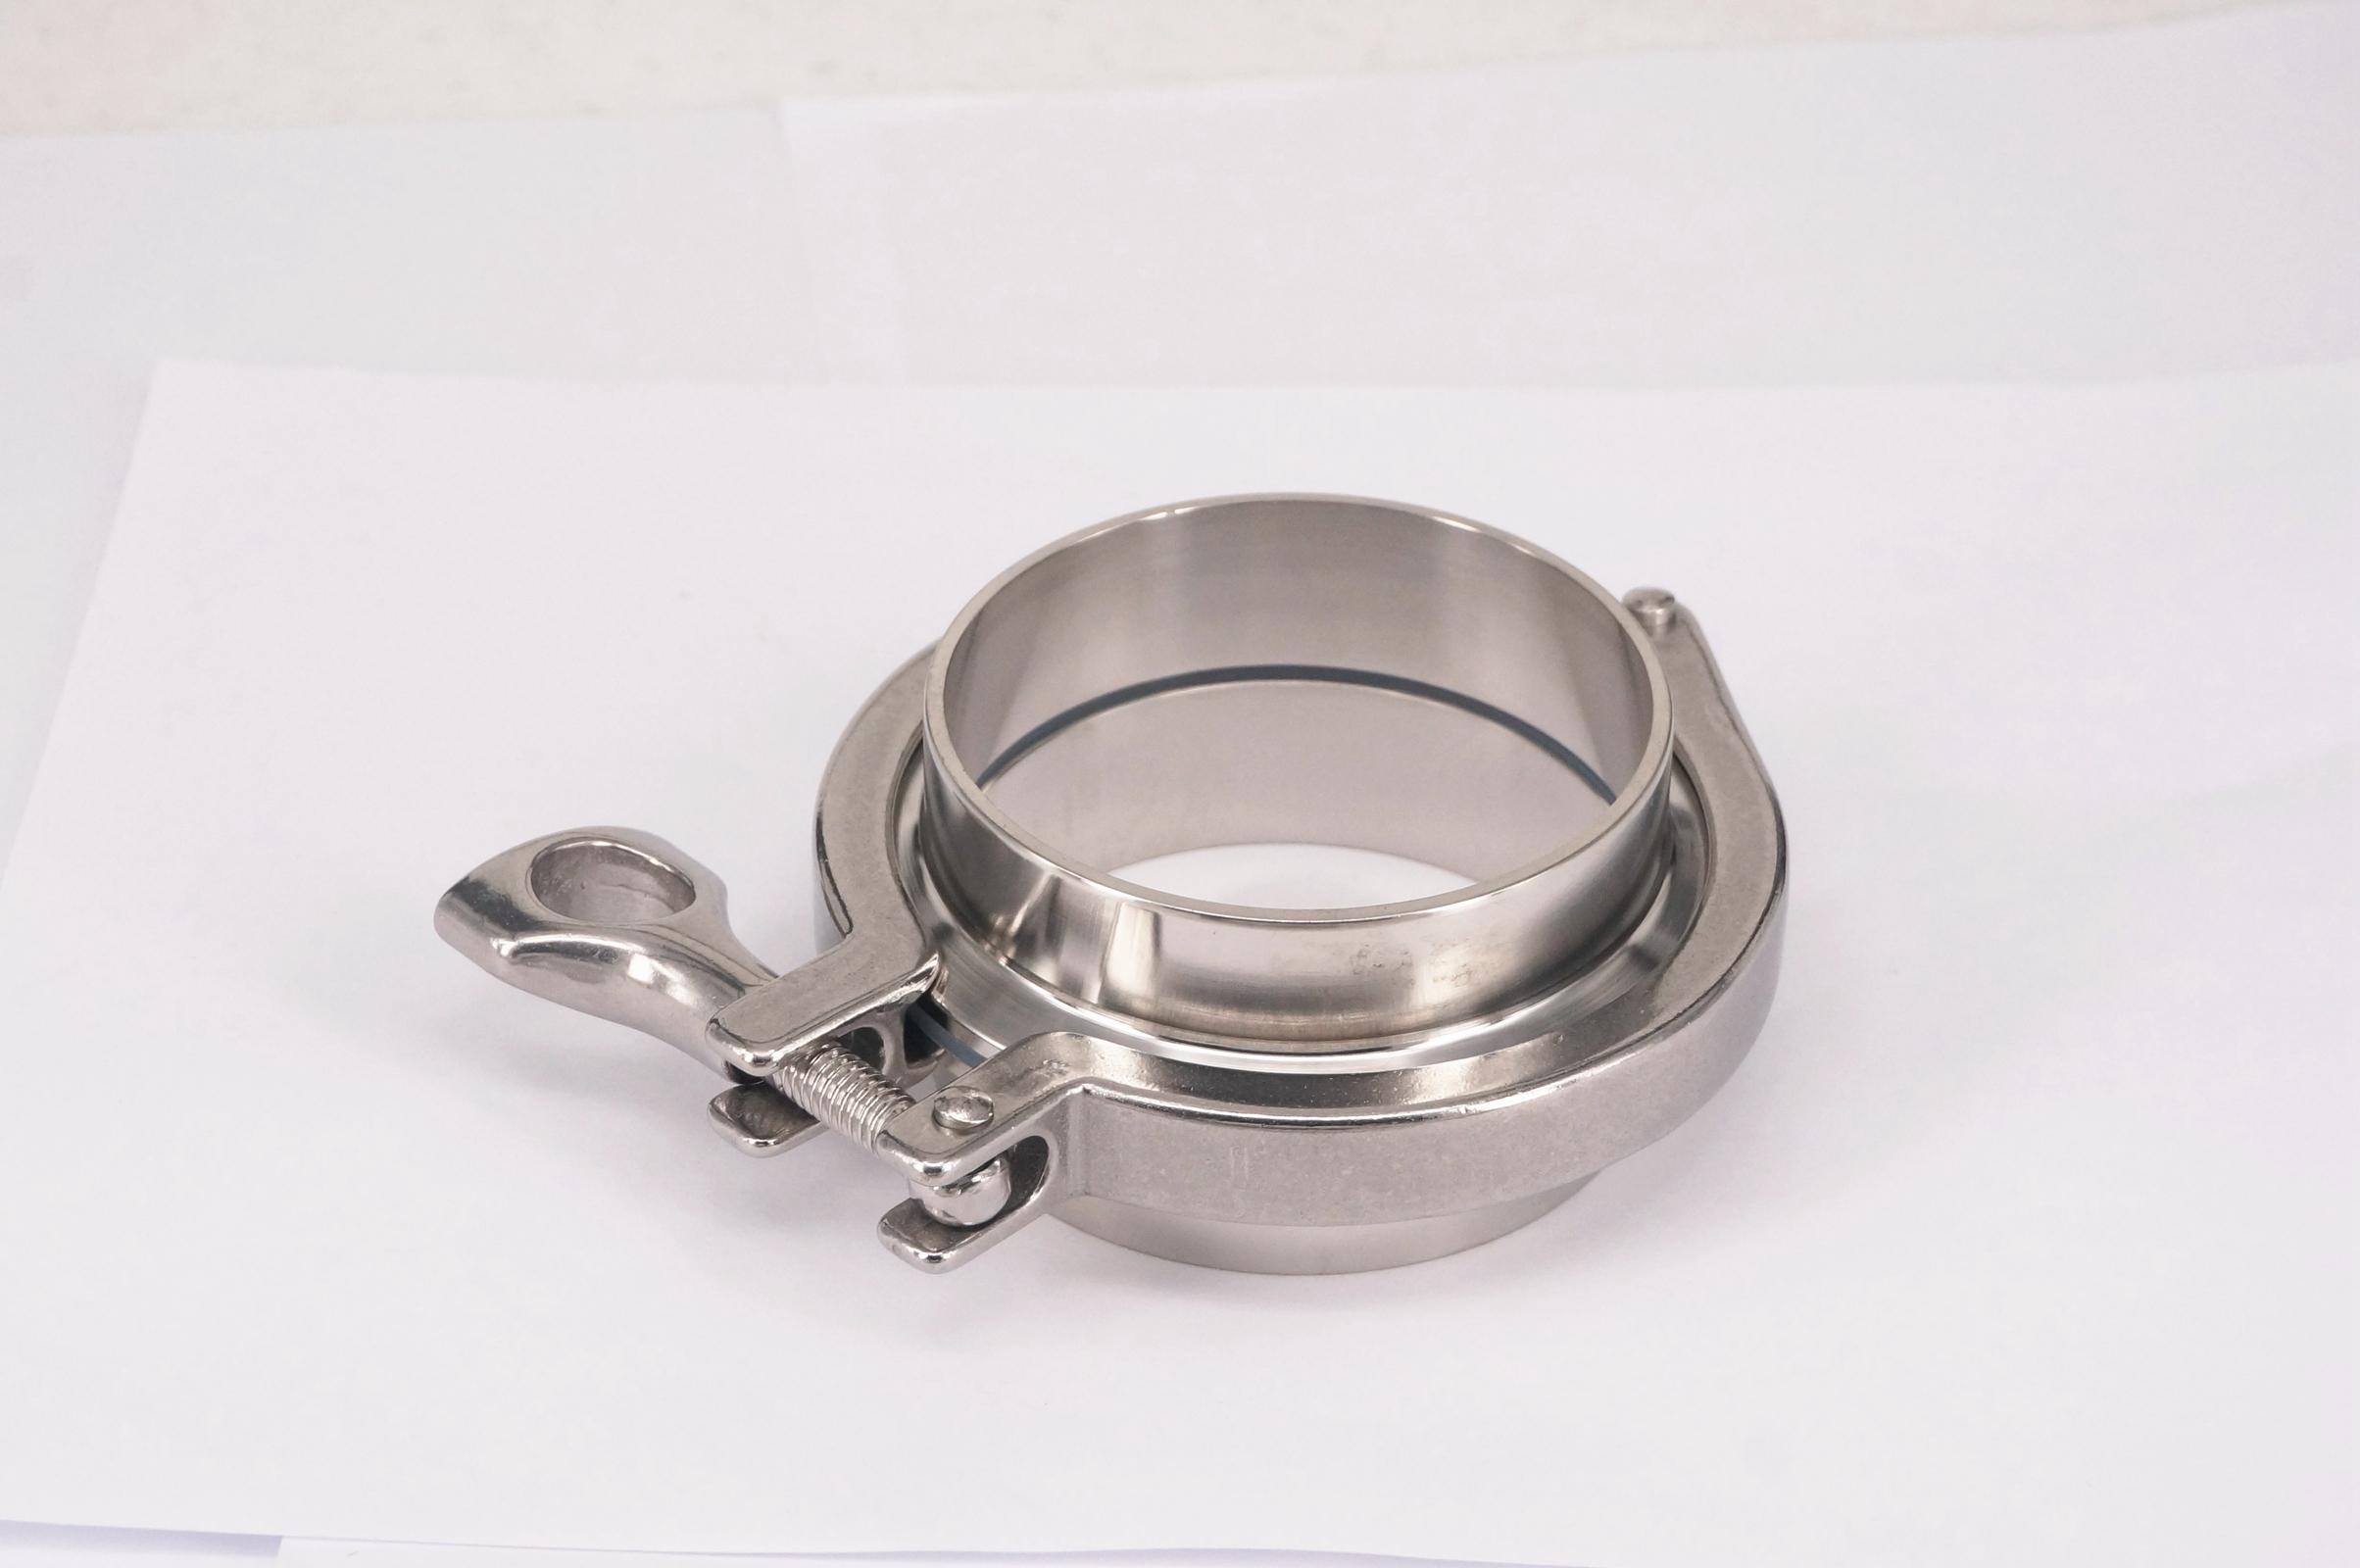 A Set 76mm 3 O/D Sanitary Tri Clamp Weld Ferrule + Tri Clamp + Silicon Gasket 304 Stainless Steel